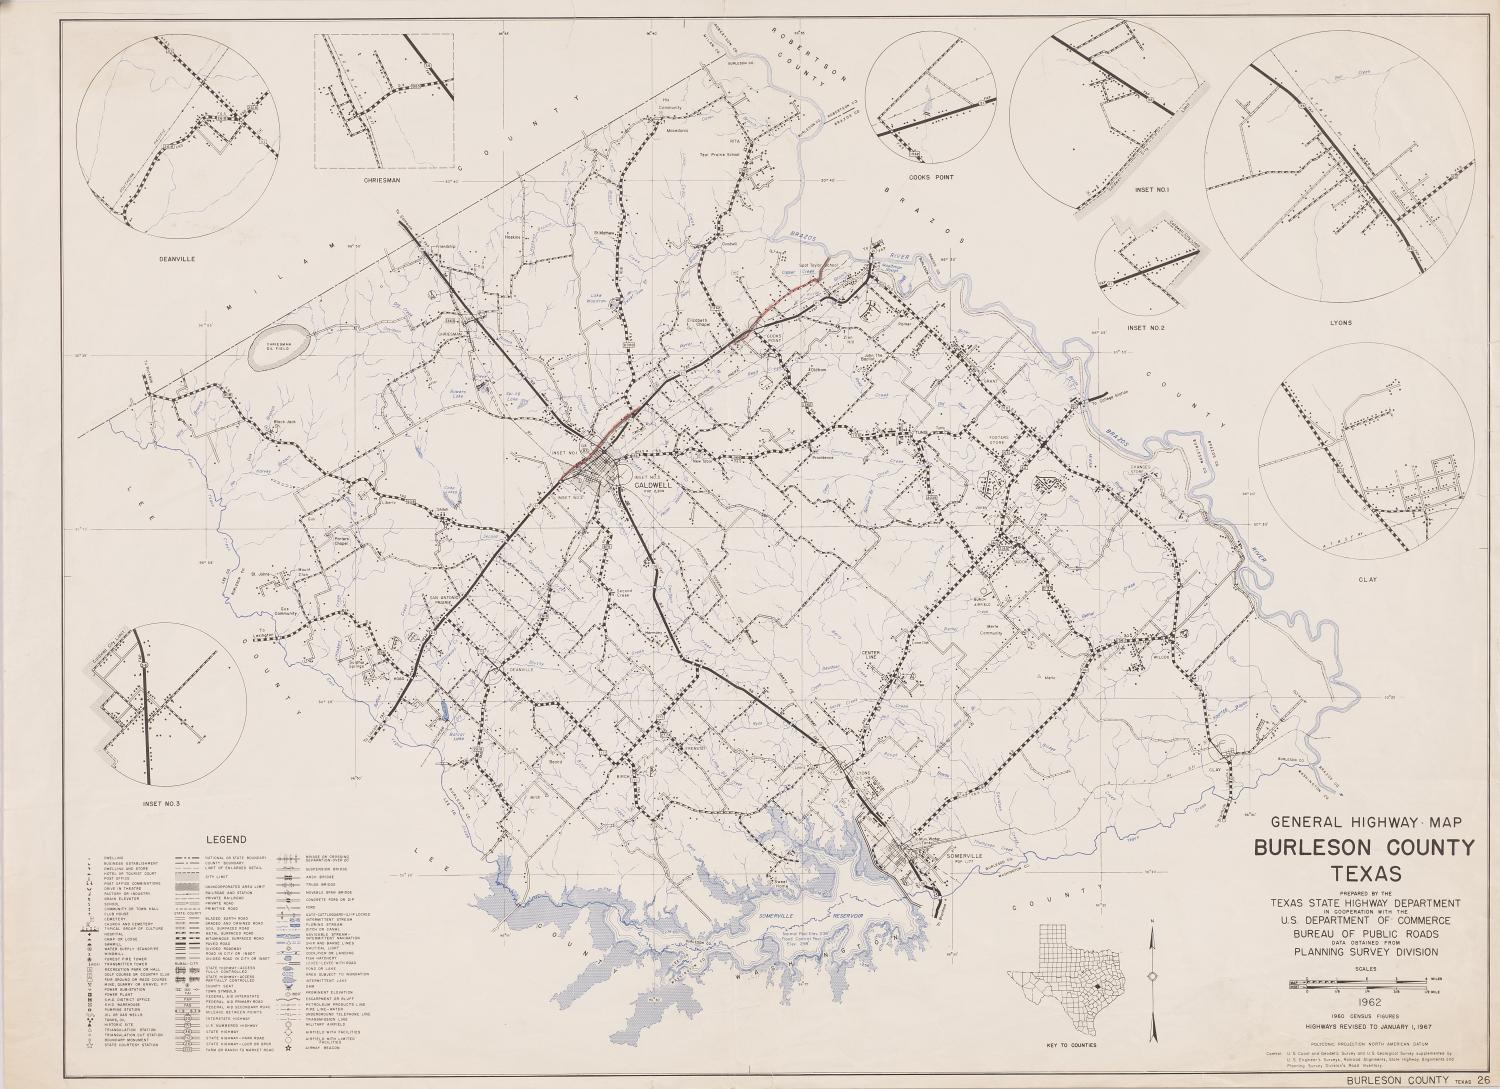 General Highway Map Burleson County Texas  The Portal to Texas